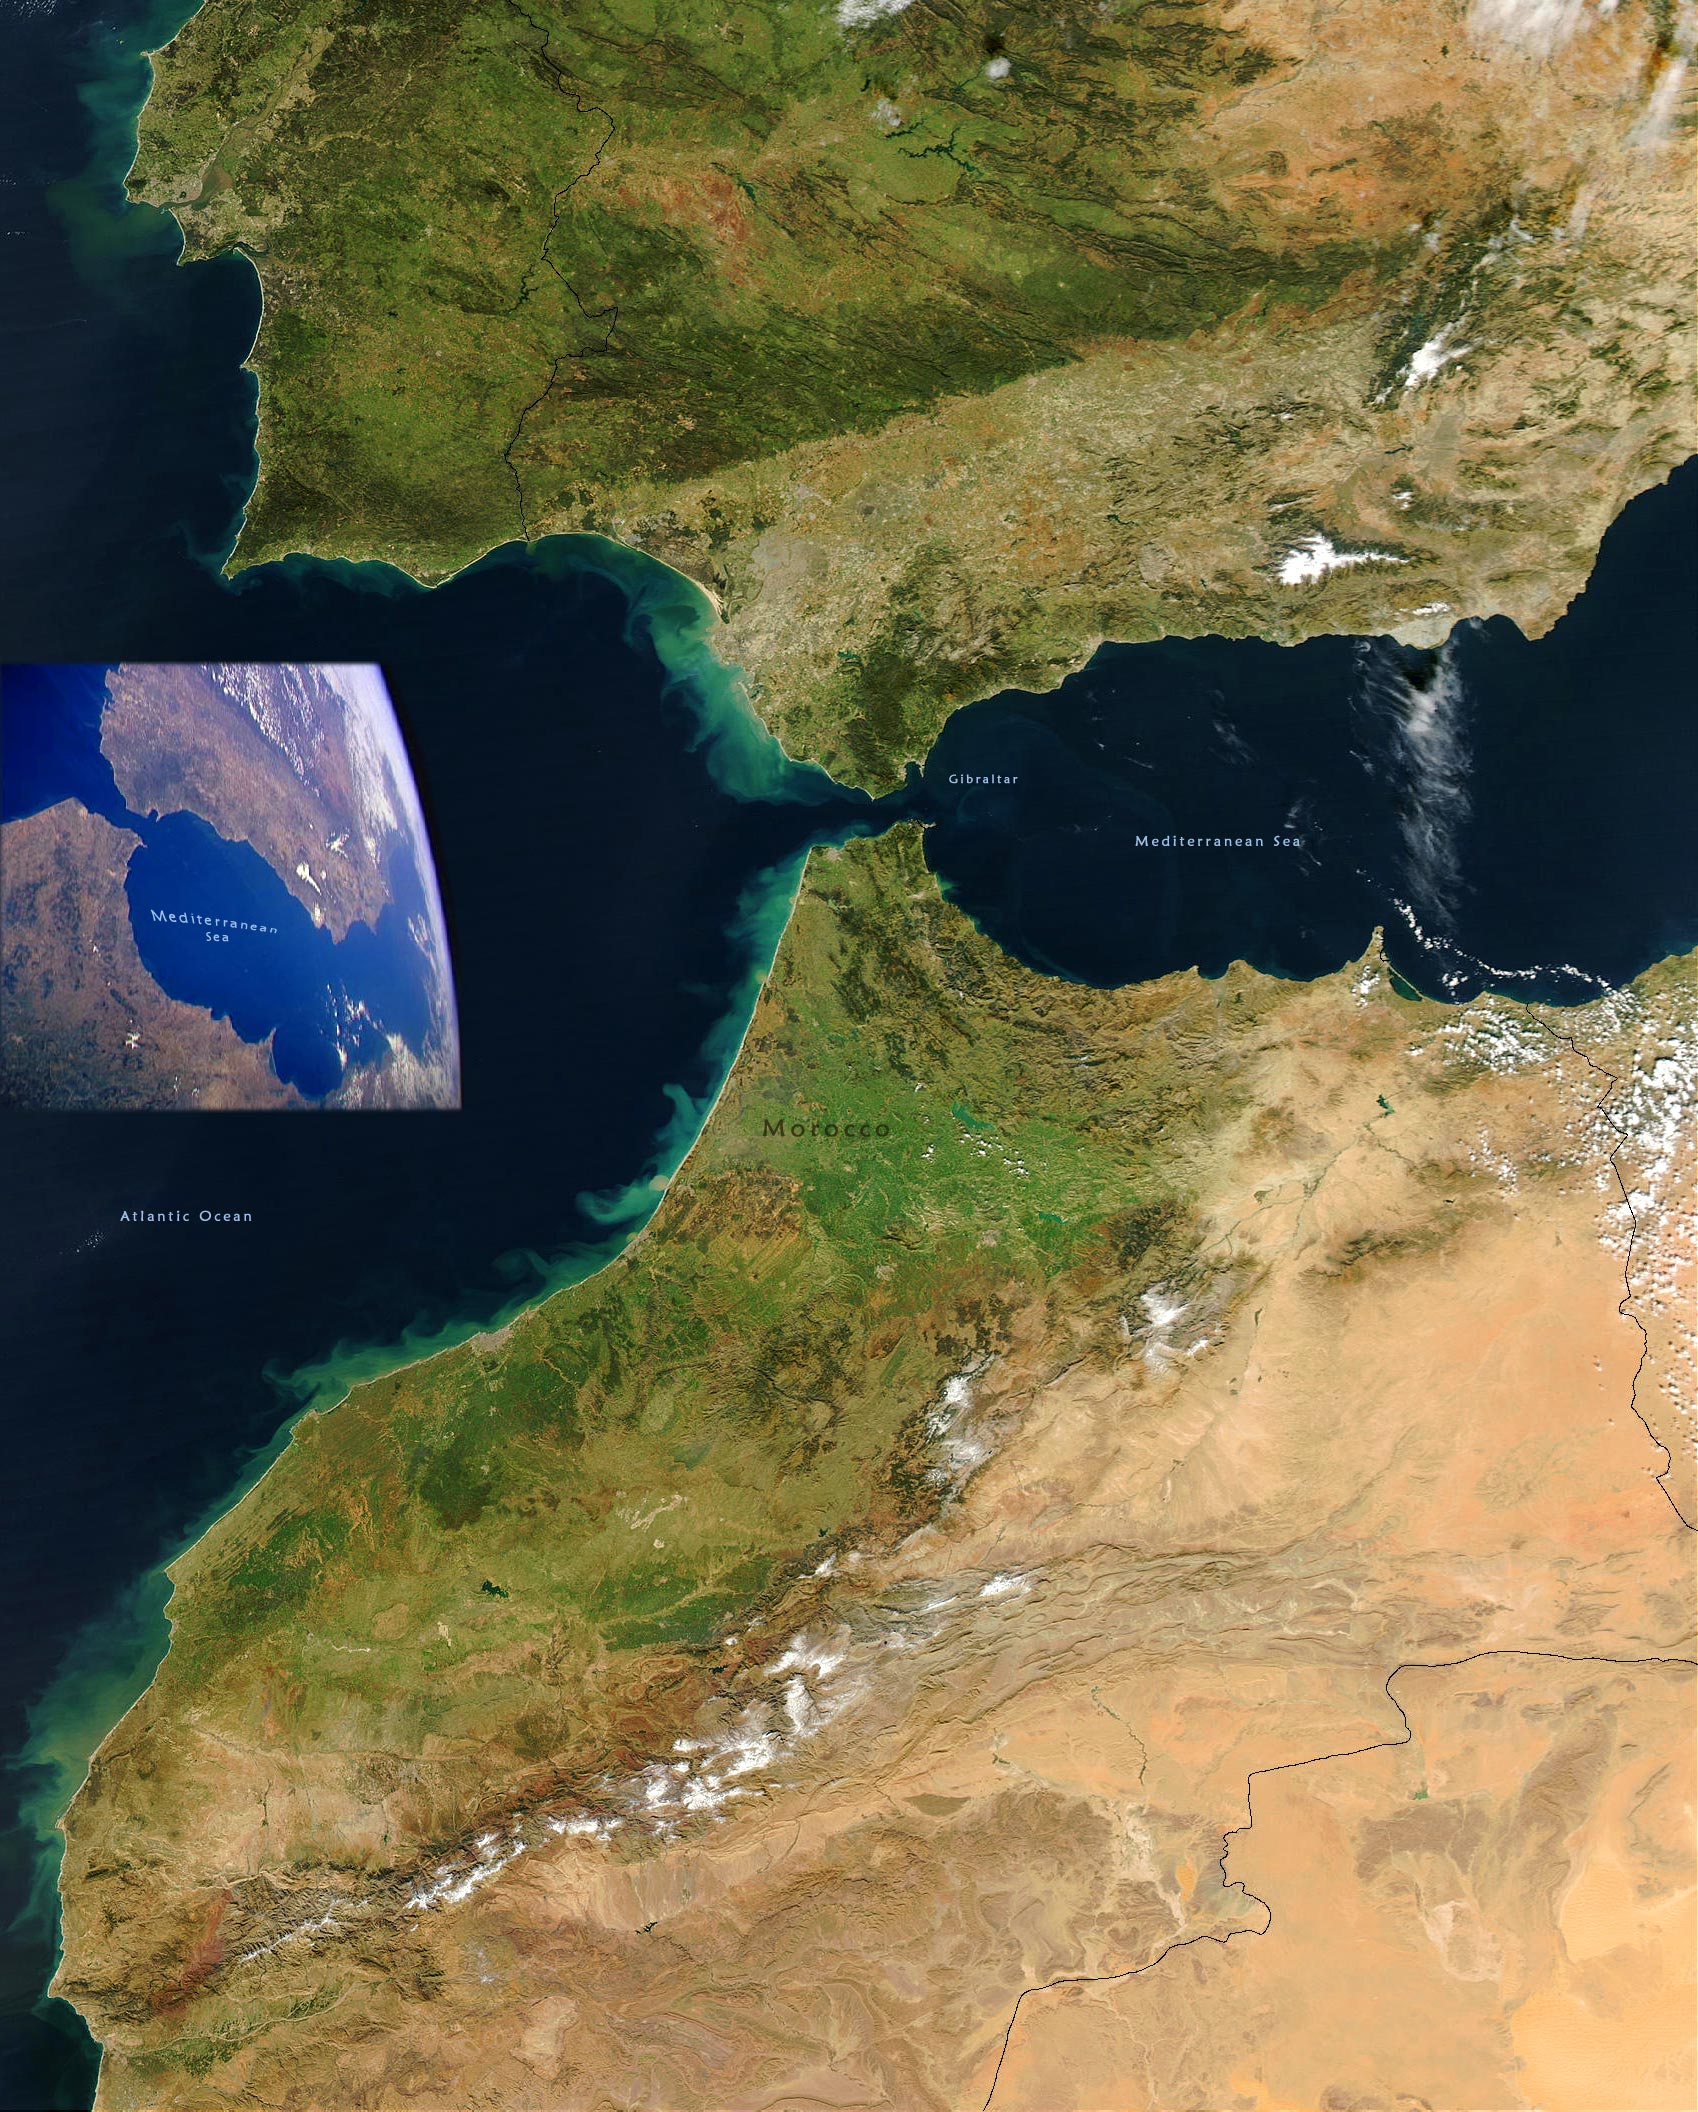 Coast Of Spain Map.Strait Of Gibraltar Spain Morocco Image